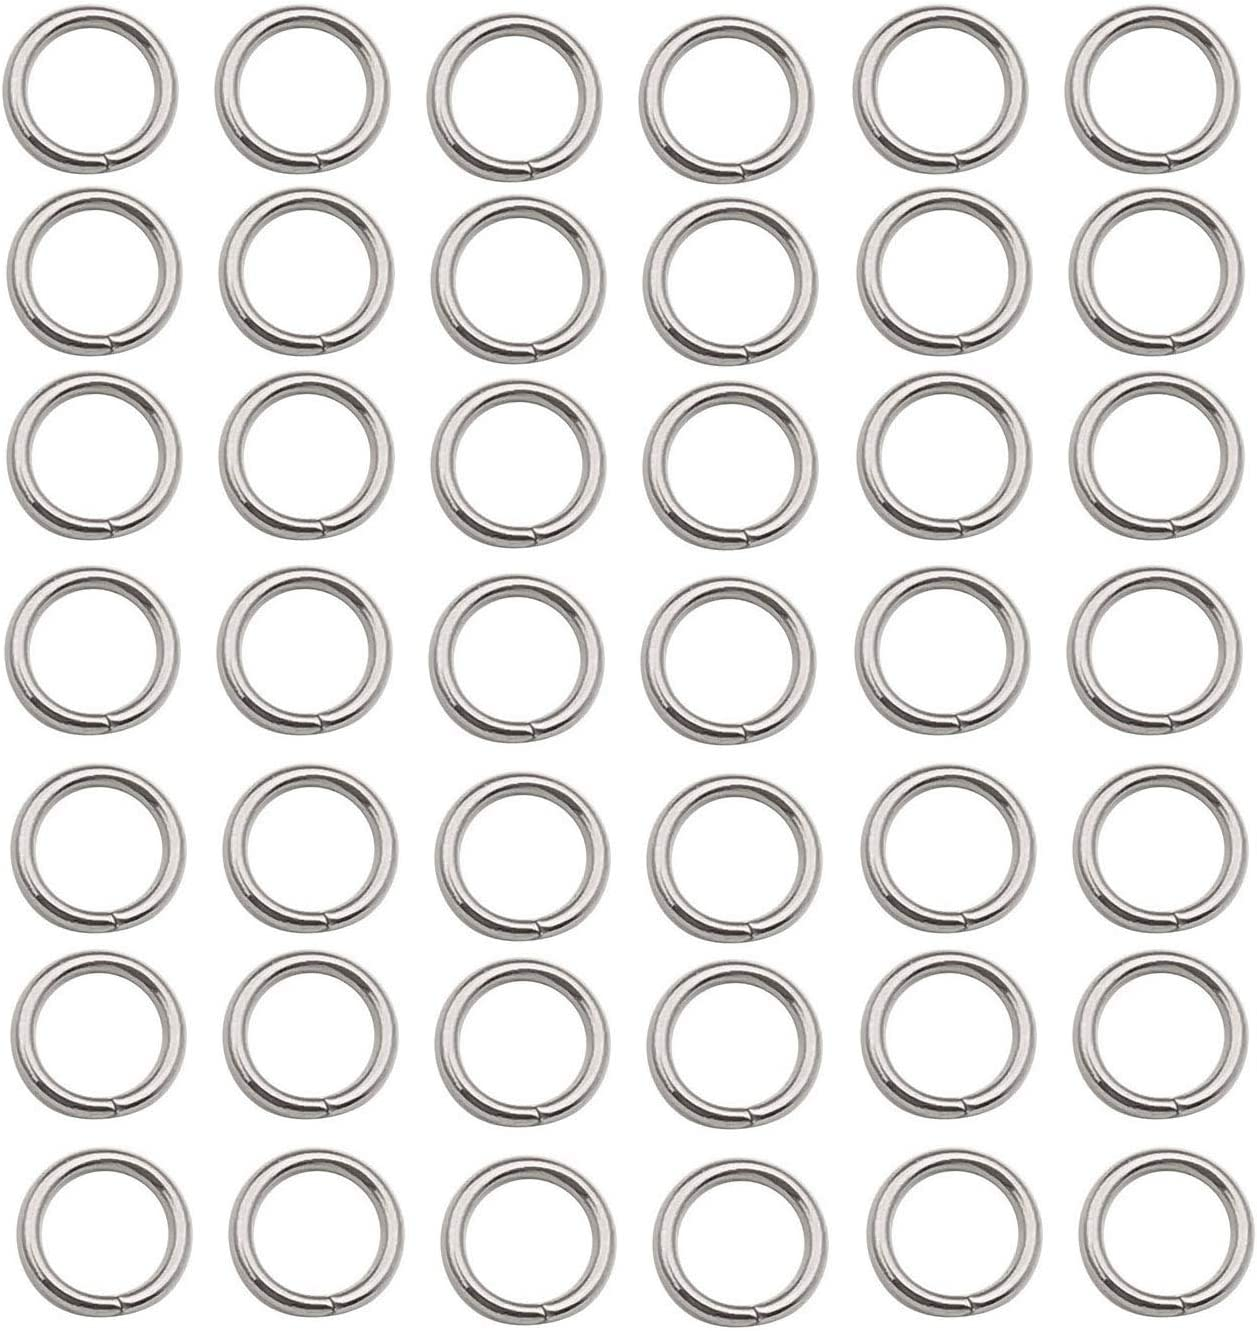 500 Brand Cash special price Cheap Sale Venue pcs Stainless Steel Split Rings Jump Connector f